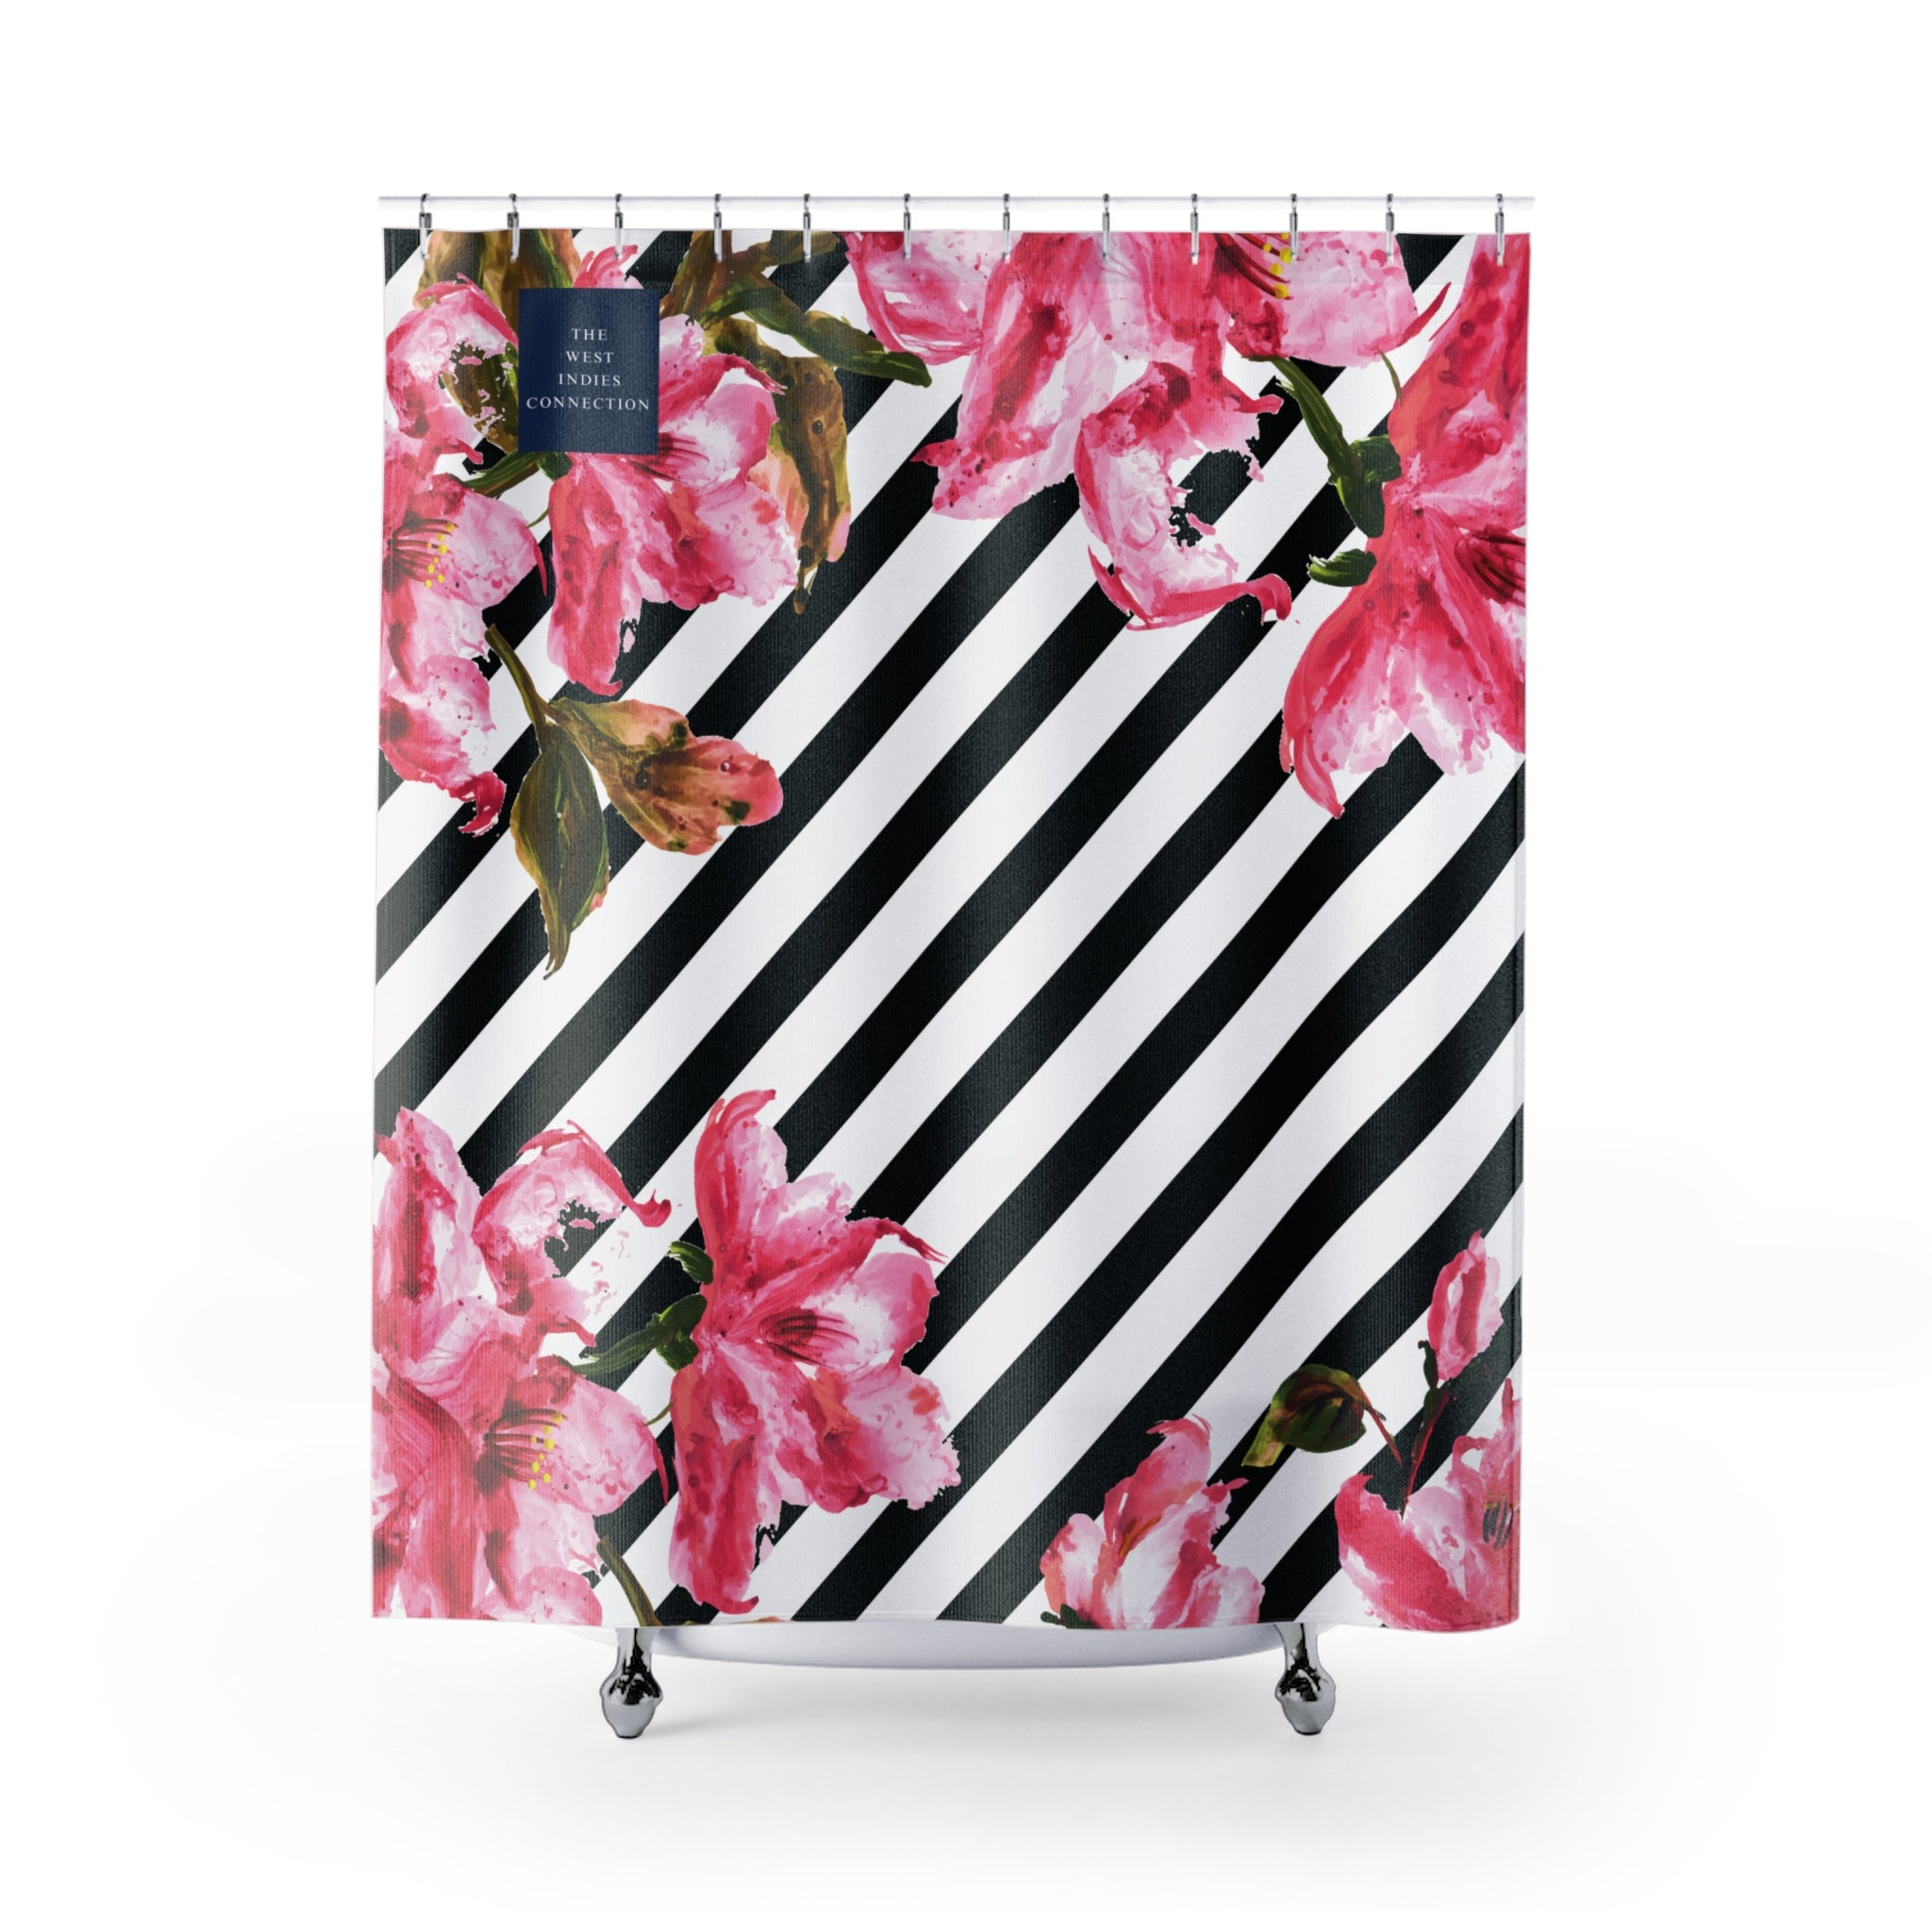 Amor - The West Indies Connection - Affordable Tropical Inspired Shower Curtains